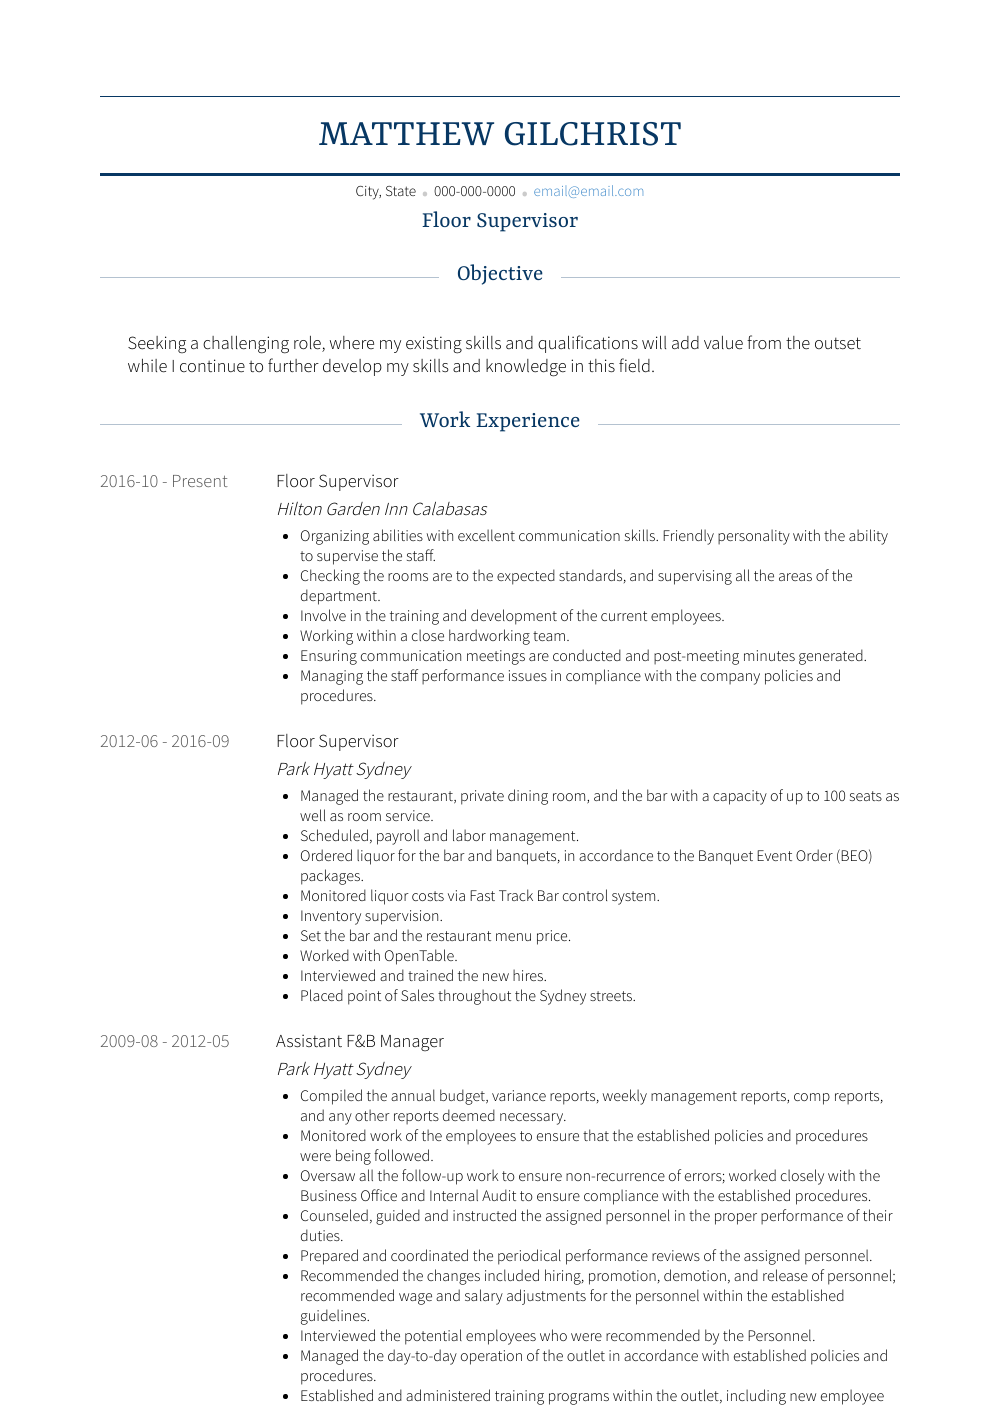 Floor Supervisor Resume Sample